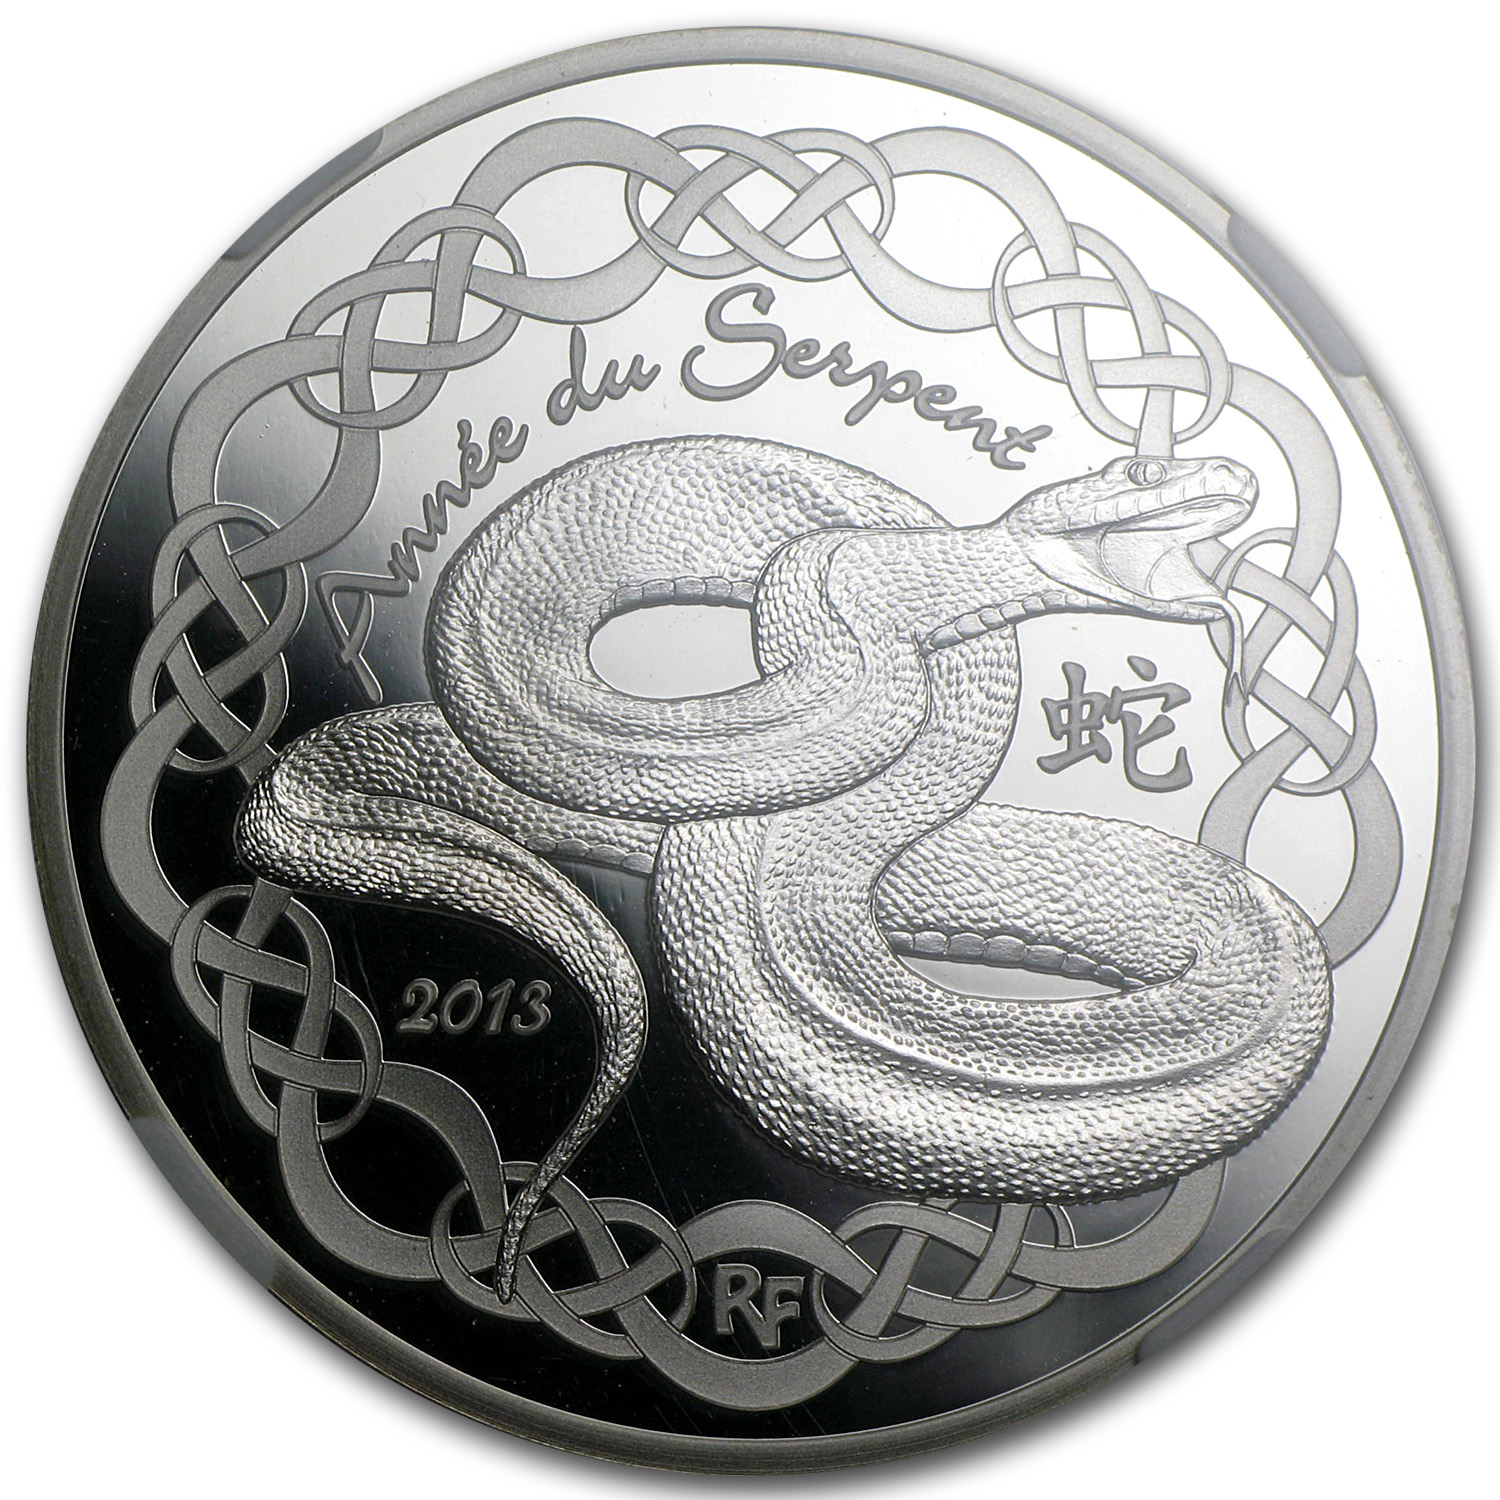 2013 10 Euro Silver Proof Year of the Snake - PF-70 UCAM NGC